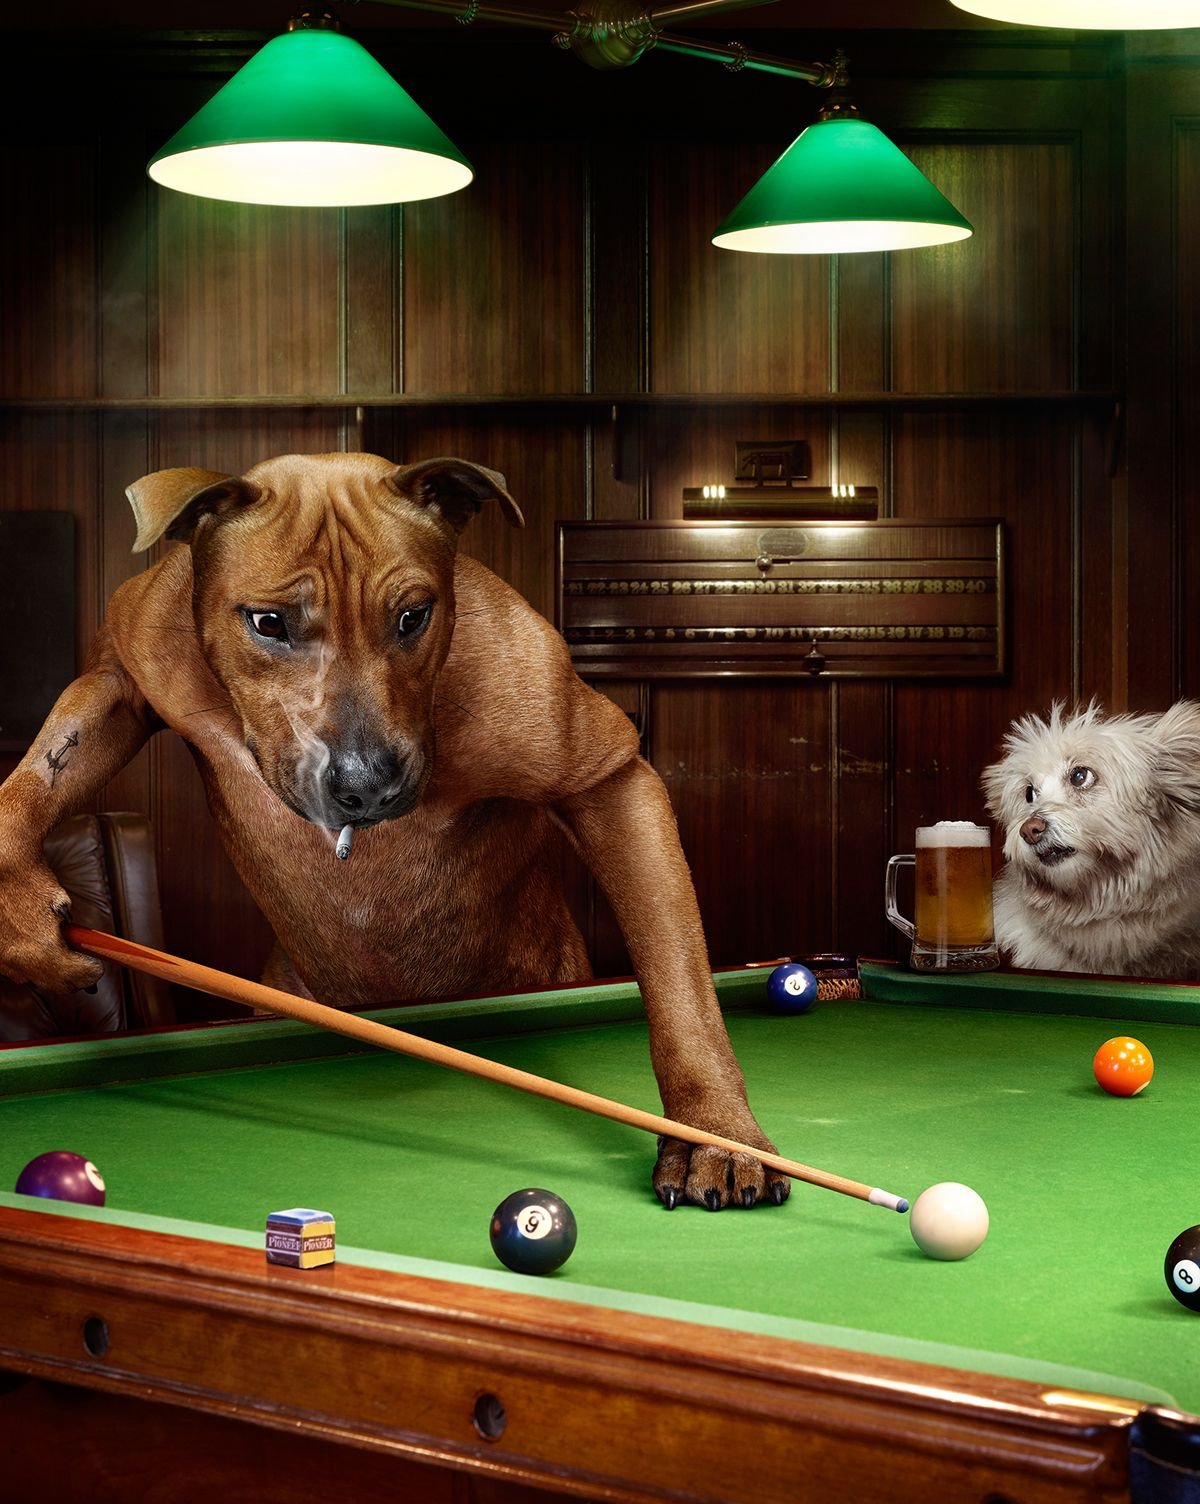 Sydney Cats & Dogs Home on Behance in 2020 Dogs playing